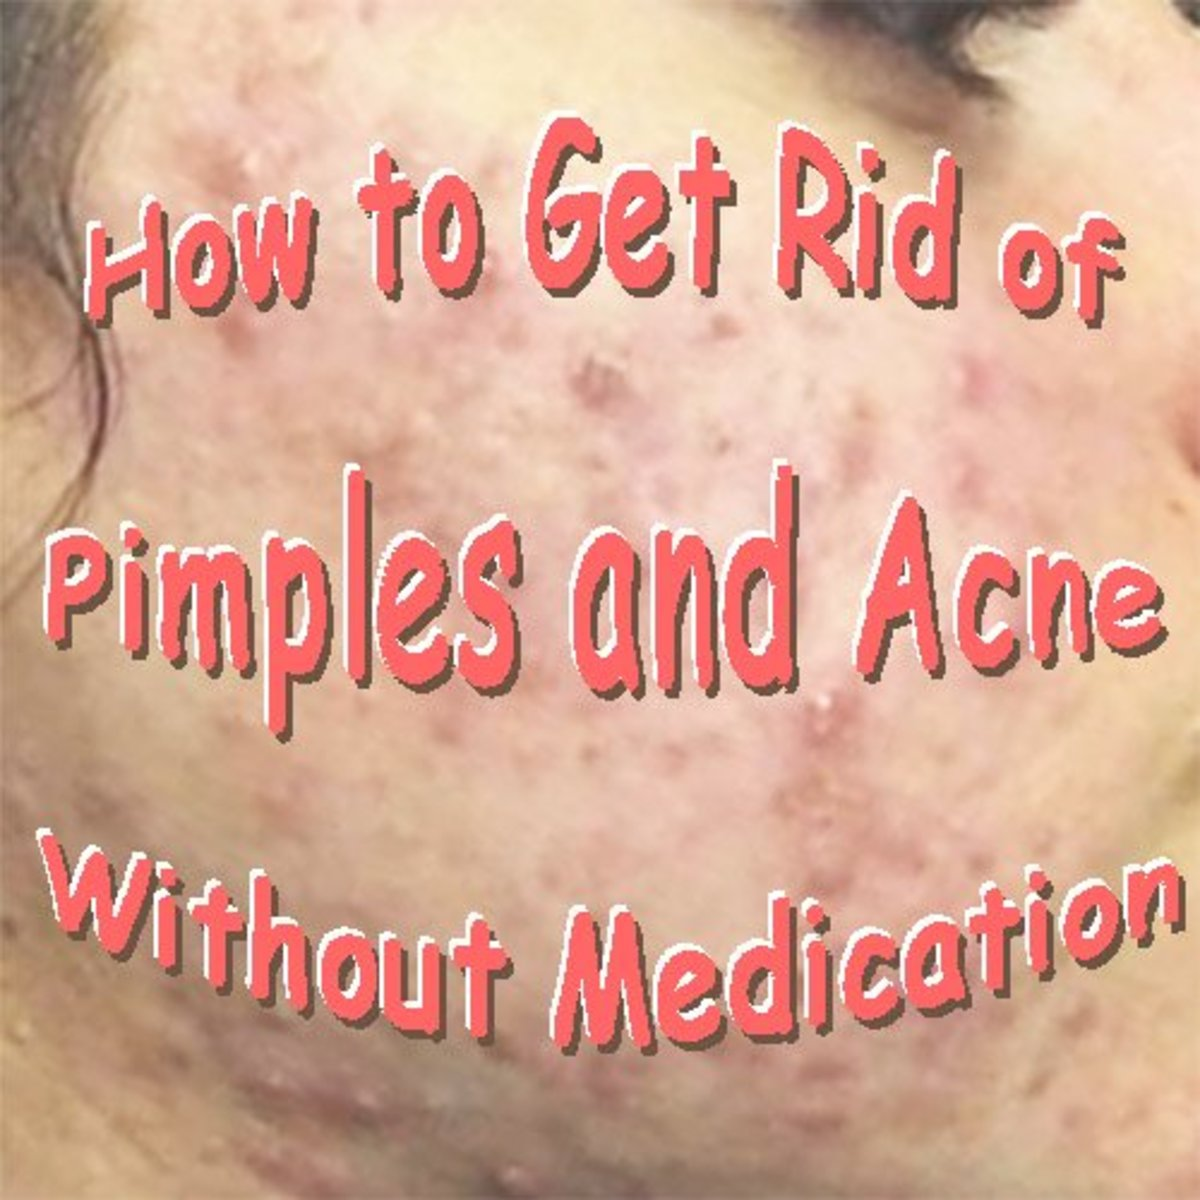 How to Get Rid of Pimples and Acne Without Medication